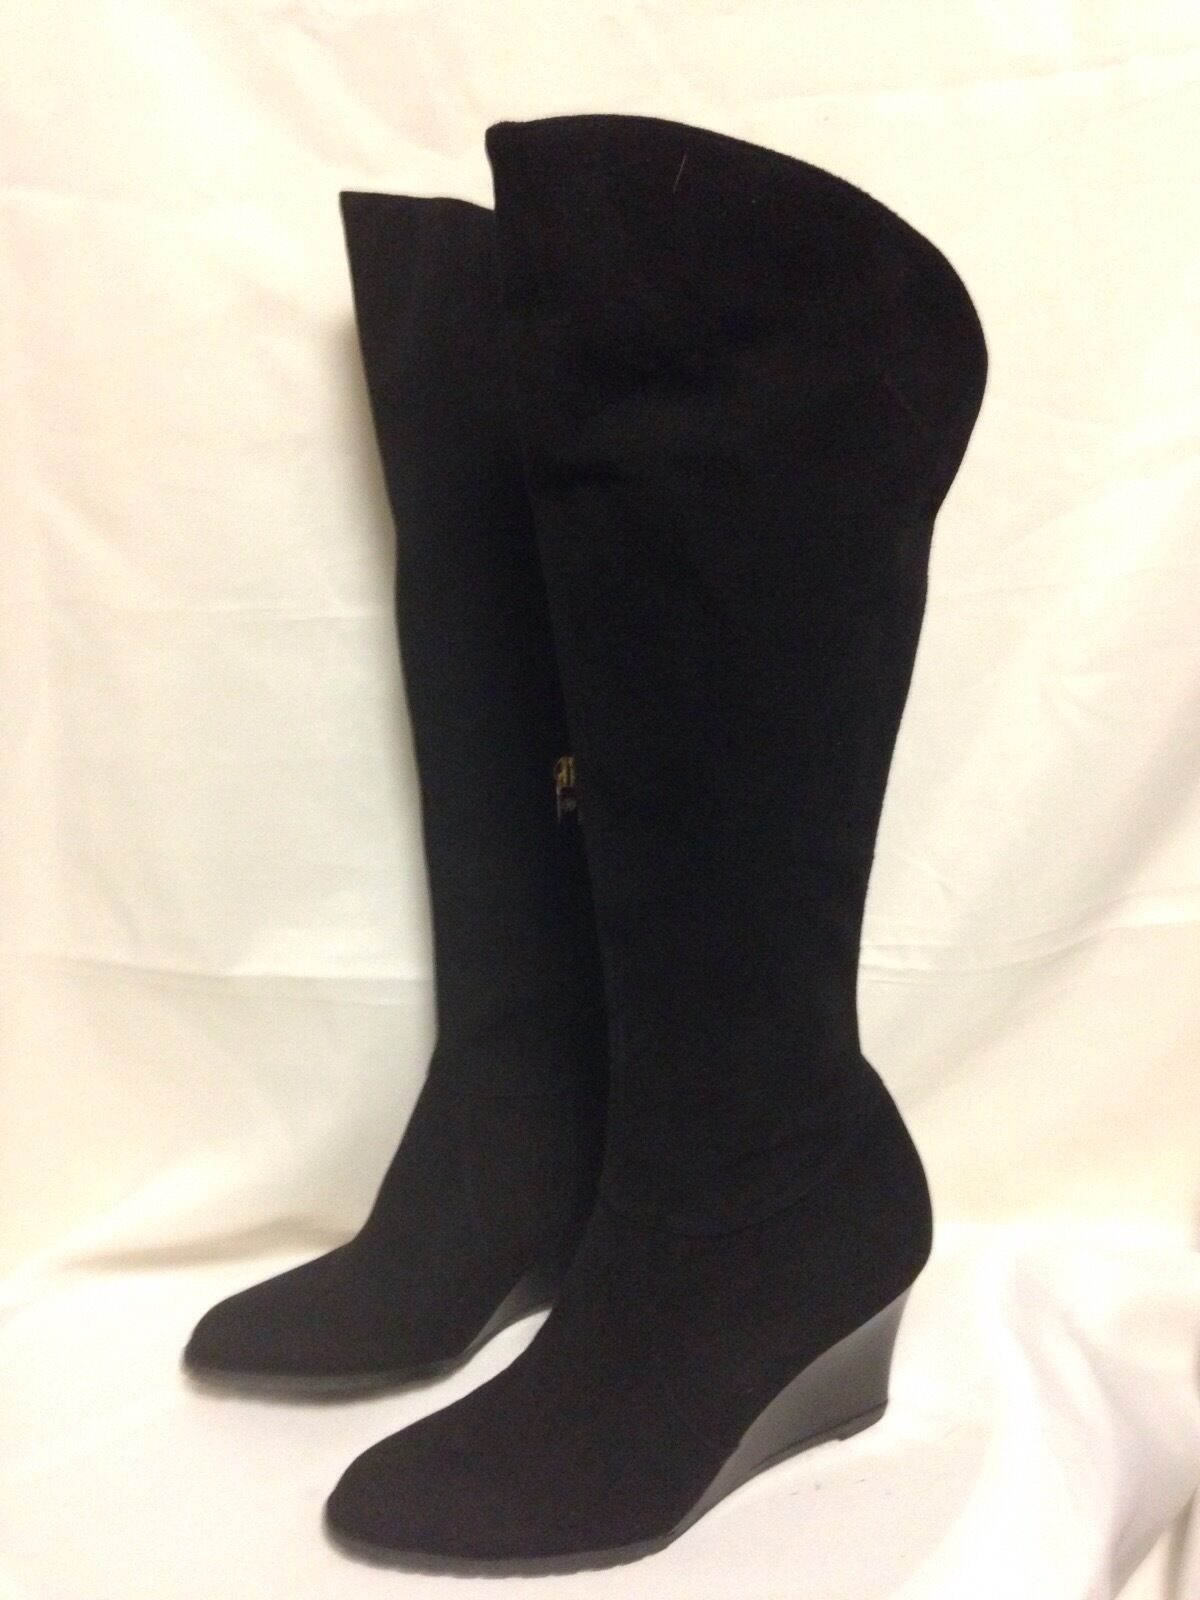 più economico LK Bennet Nancy Wedge Heel Knee High avvio 38 38 38 M nero New without Box  esclusivo